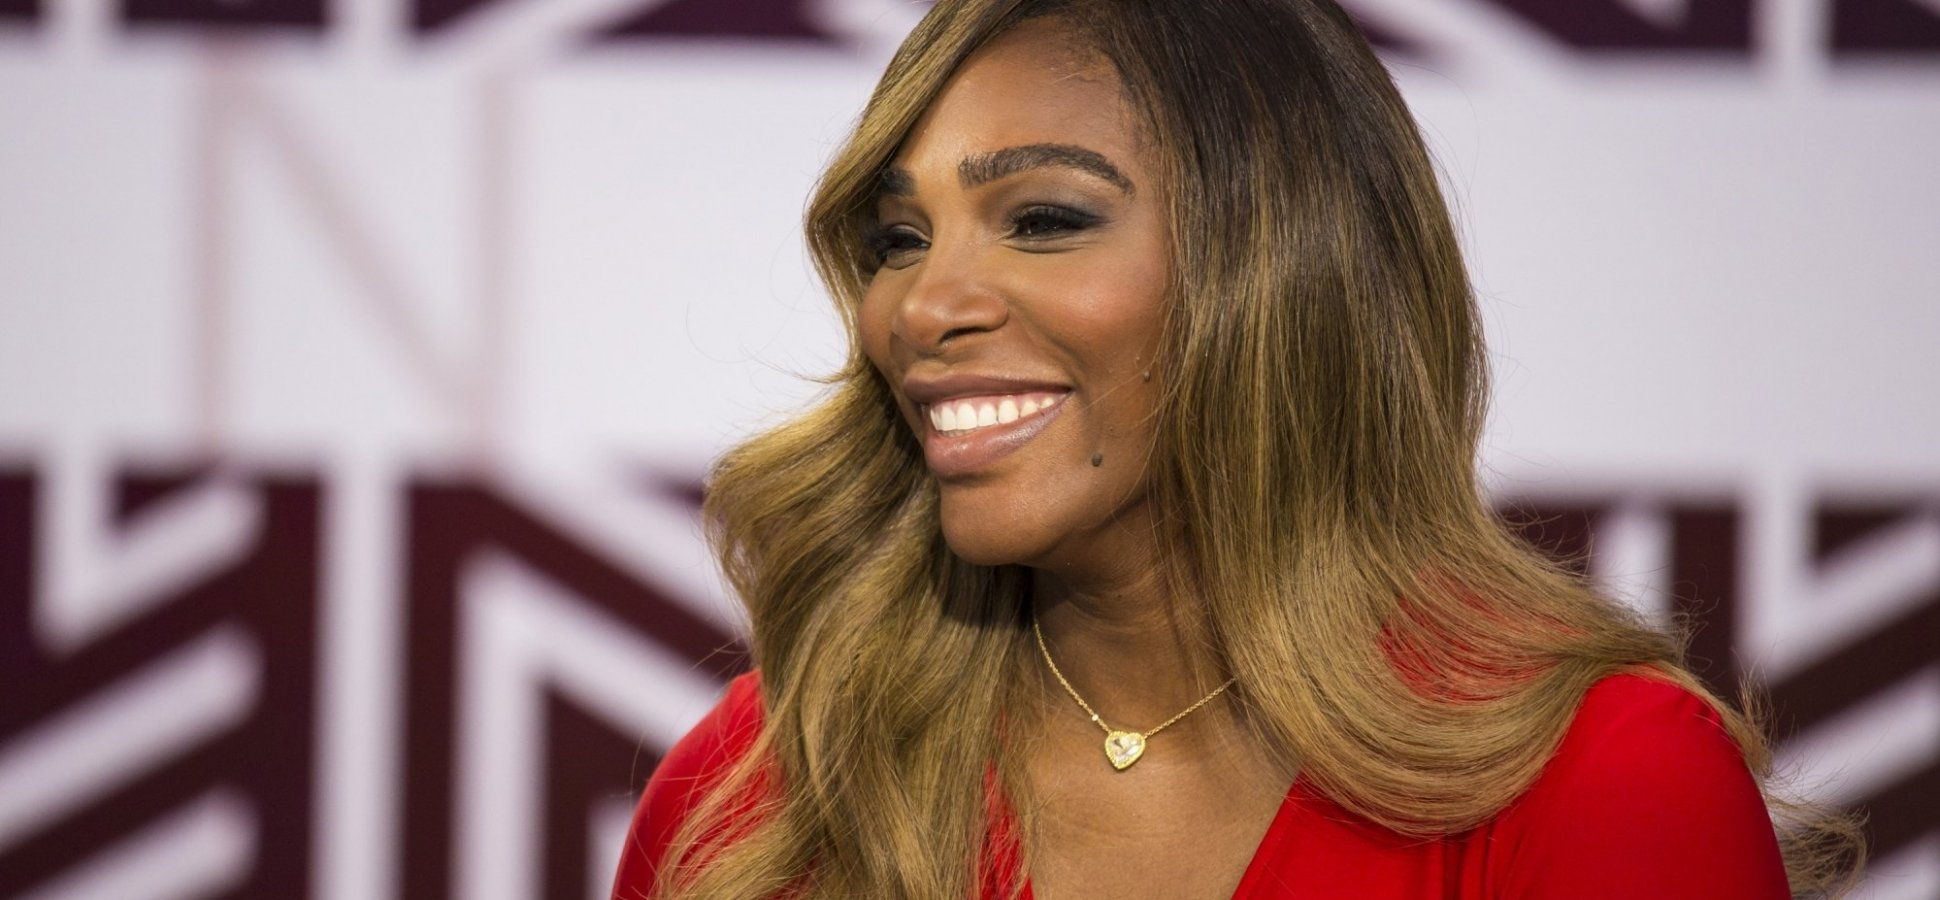 Serena Williams Launched a Venture Firm That Has Already Invested in More Than 30 Companies